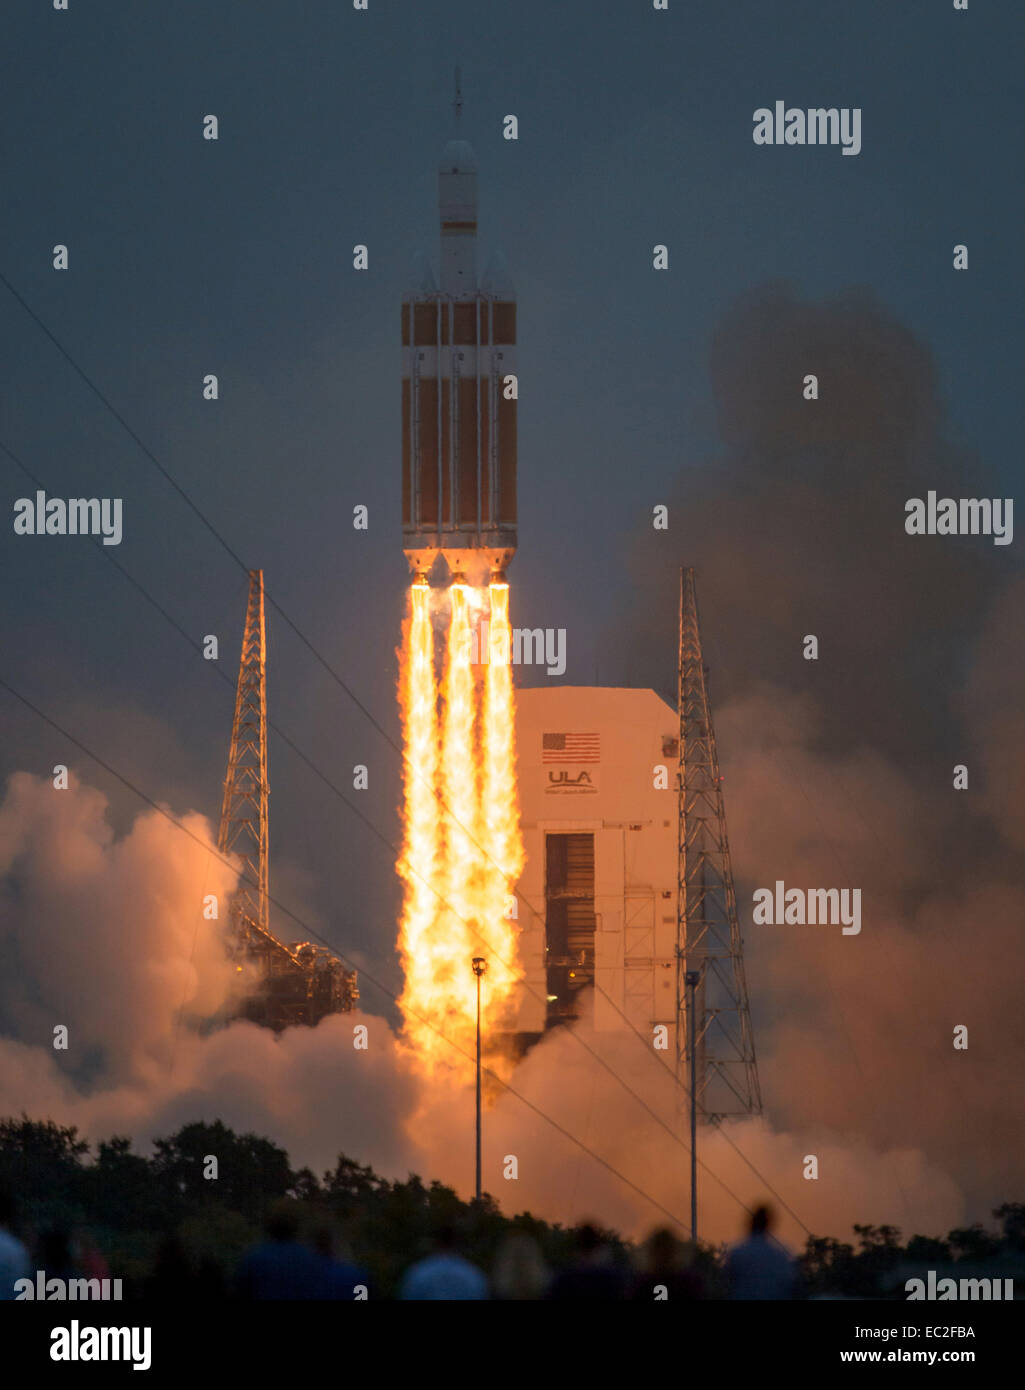 The United Launch Alliance Delta IV Heavy rocket with NASA's Orion spacecraft mounted atop, lifts off from Cape - Stock Image